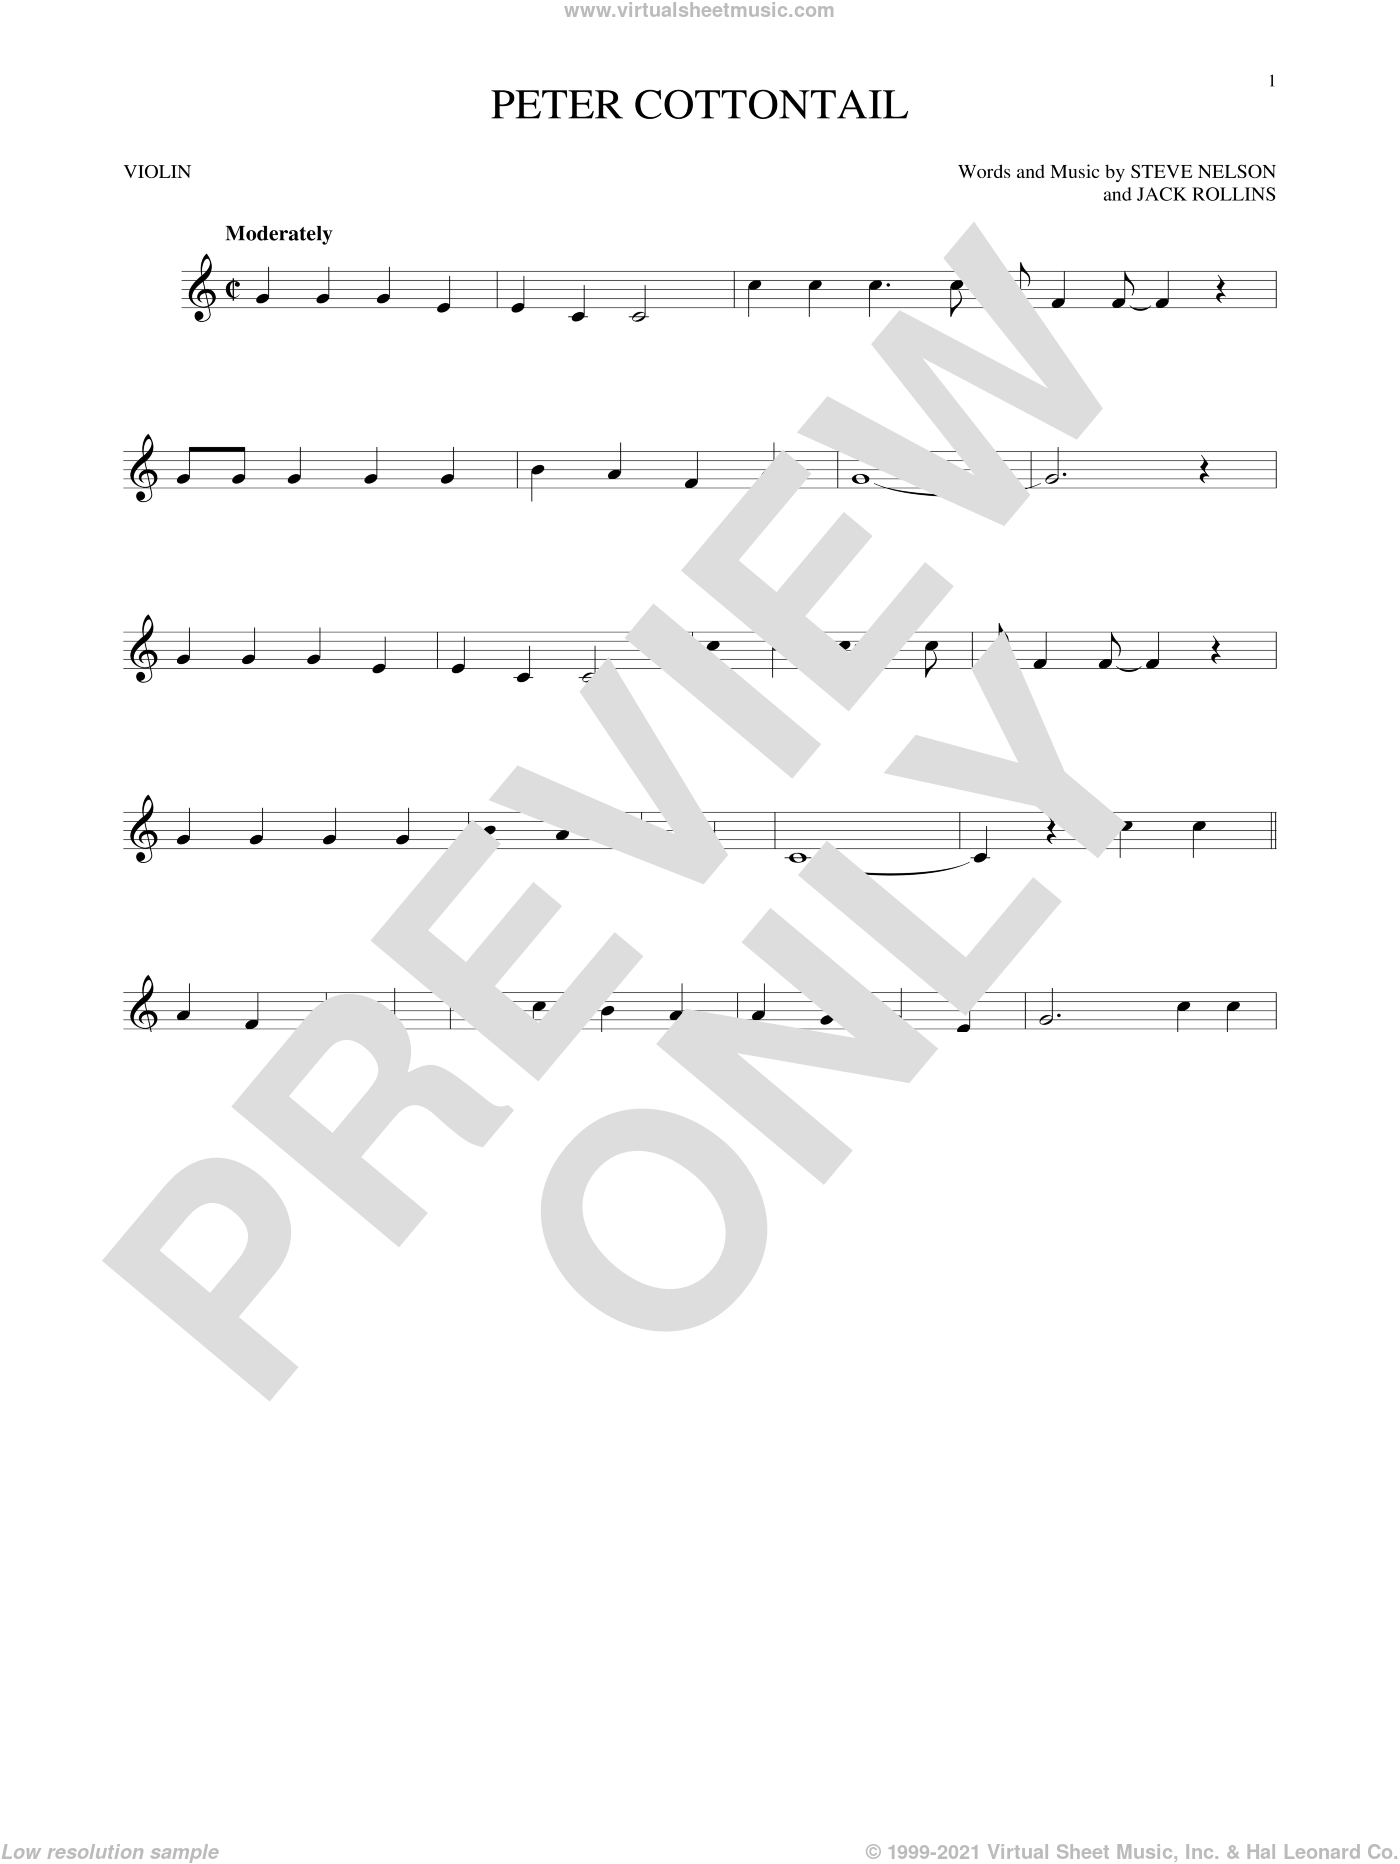 Peter Cottontail sheet music for violin solo by Jack Rollins